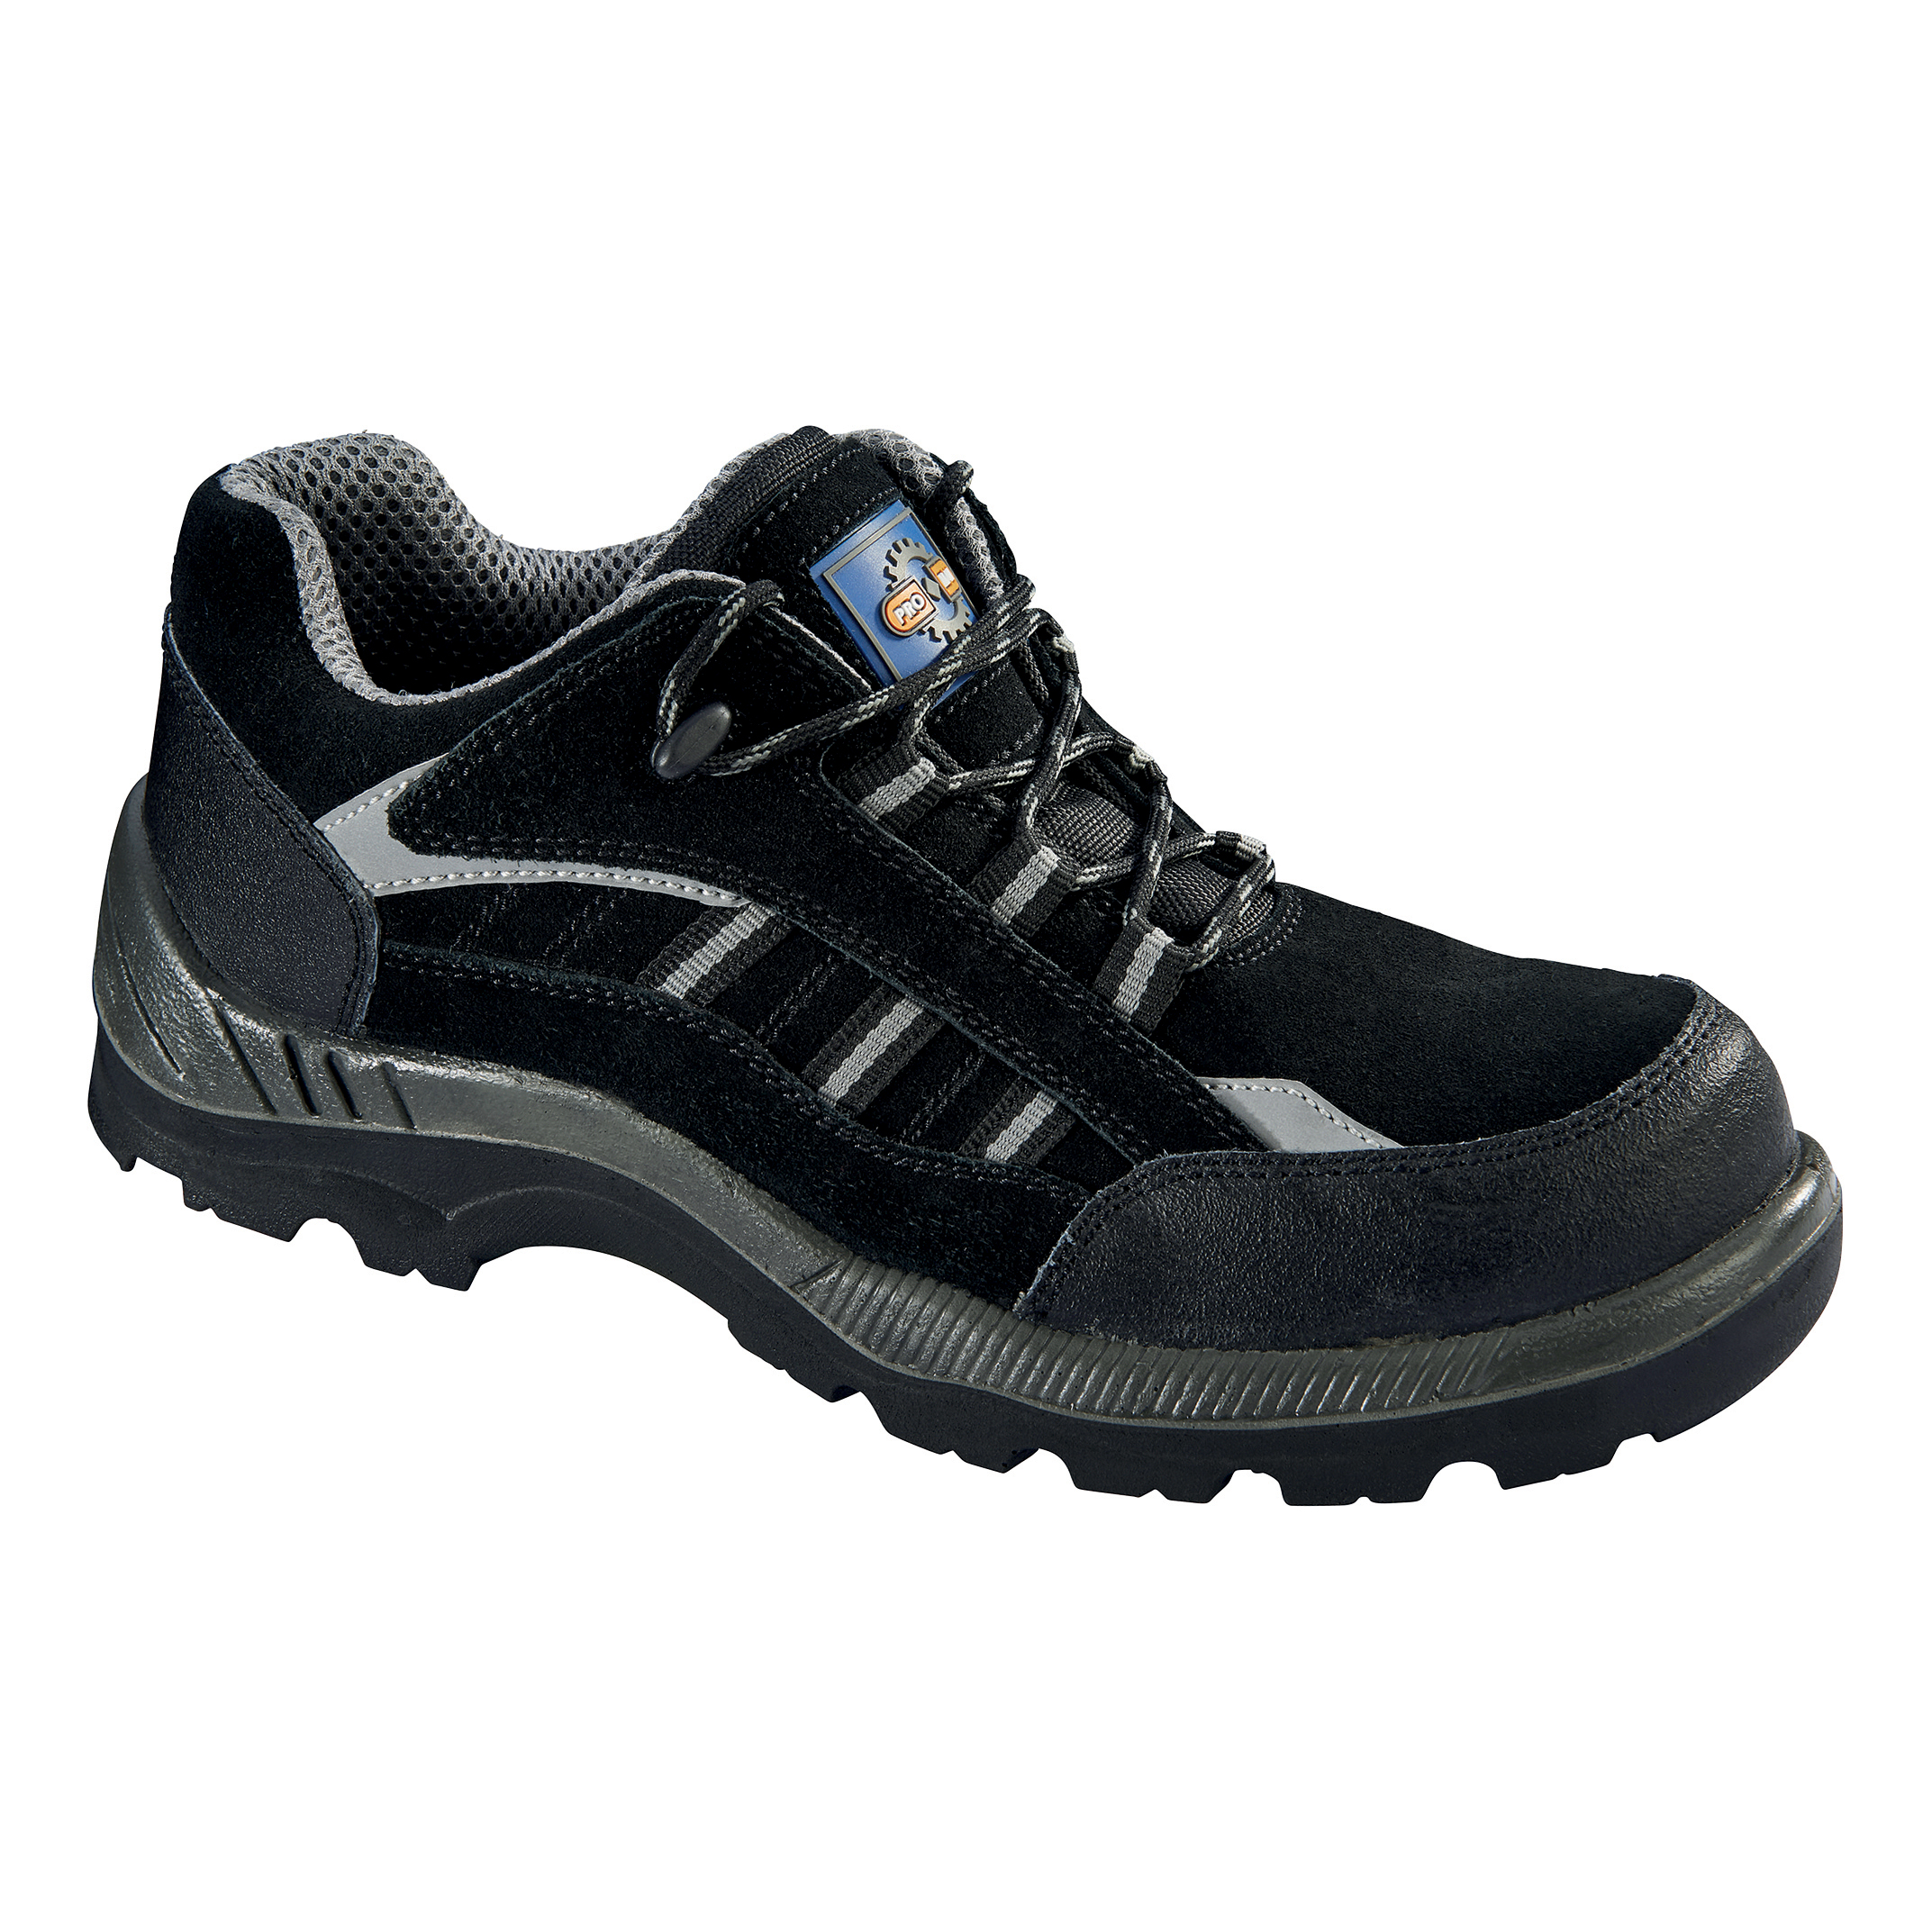 Safety shoes Rockfall ProMan Trainer Suede Fibreglass Toecap Black Size 13 Ref PM4040 13